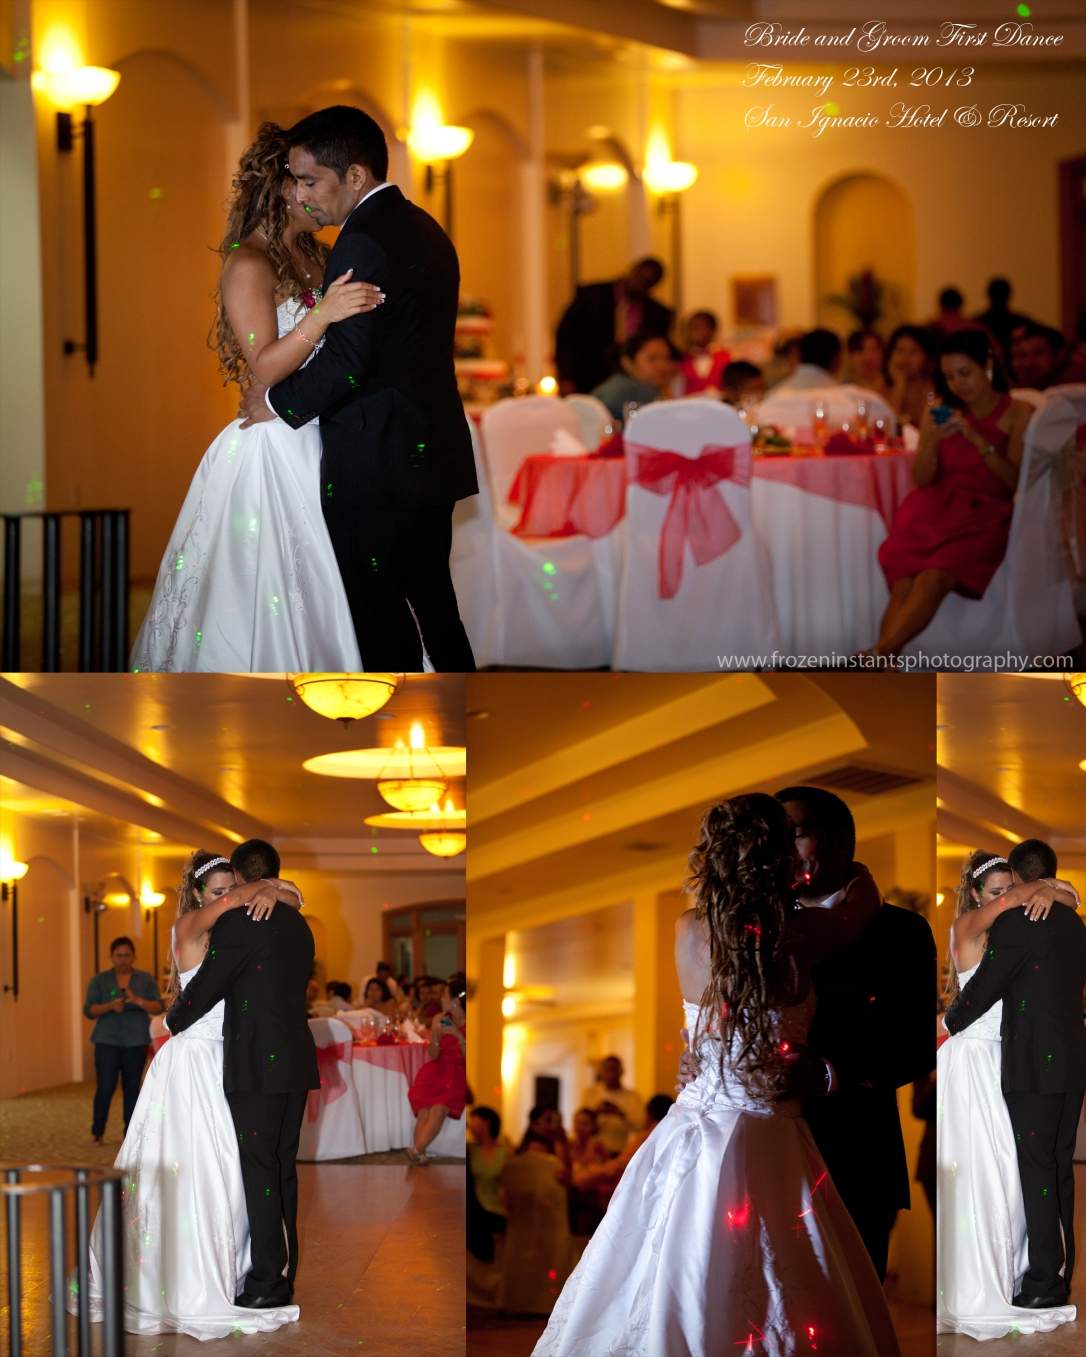 First dance, Bride and groom